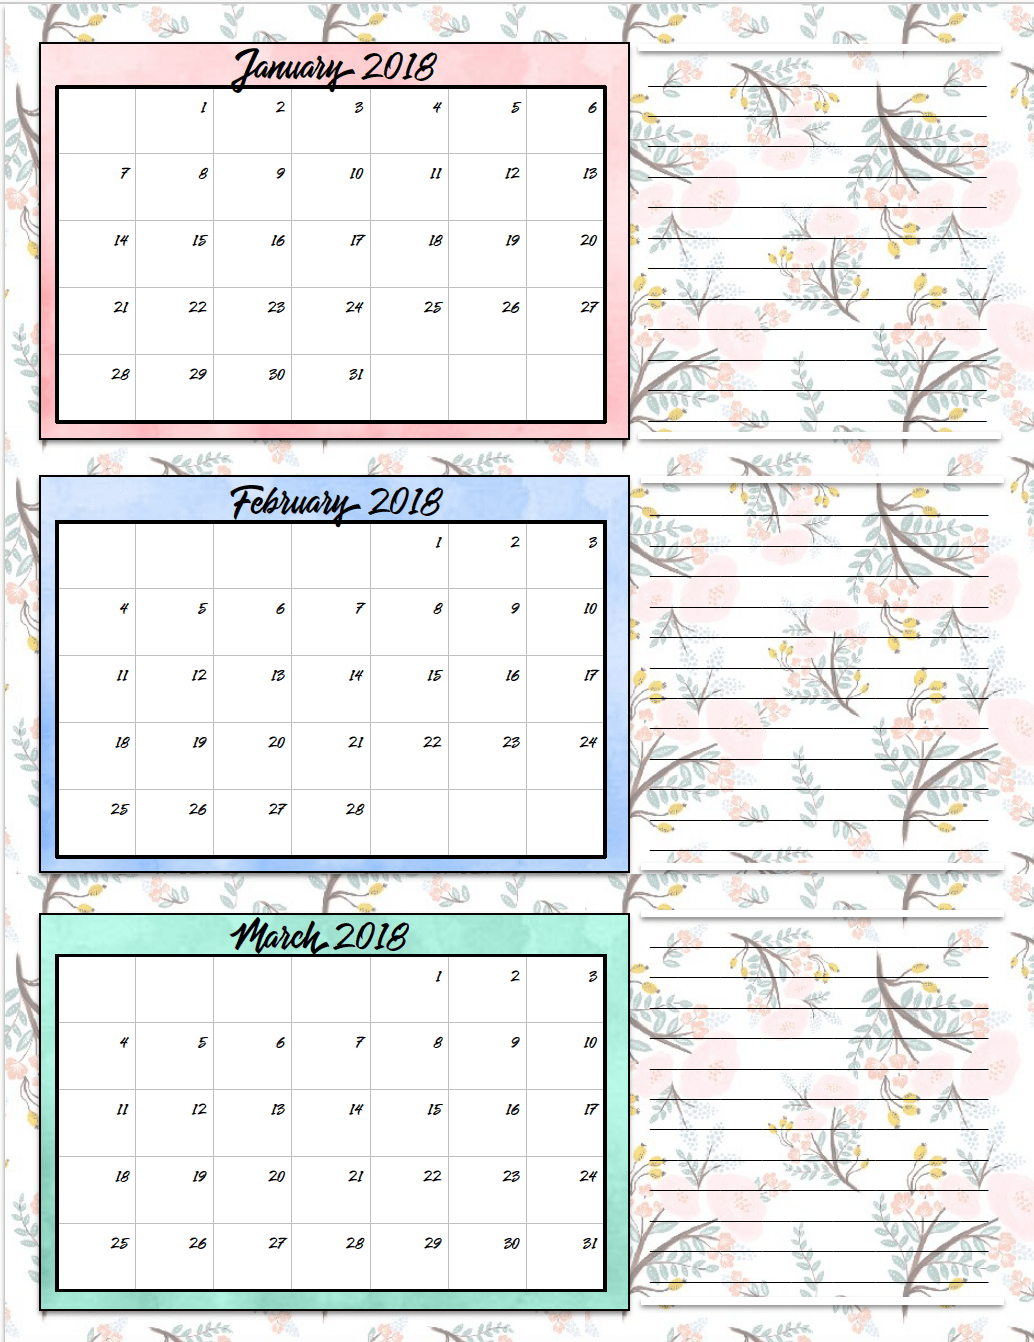 Quarterly Calendar Design : Free printable quarterly calendars designs